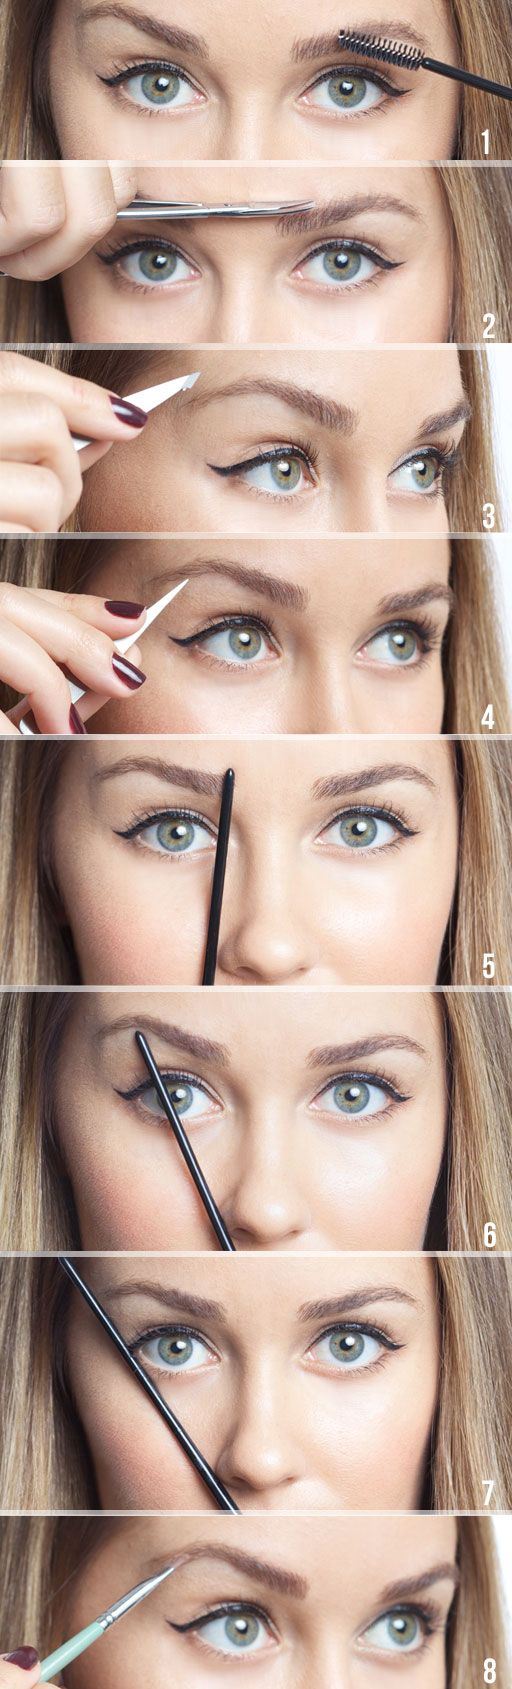 How to pluck and shape eyebrows!